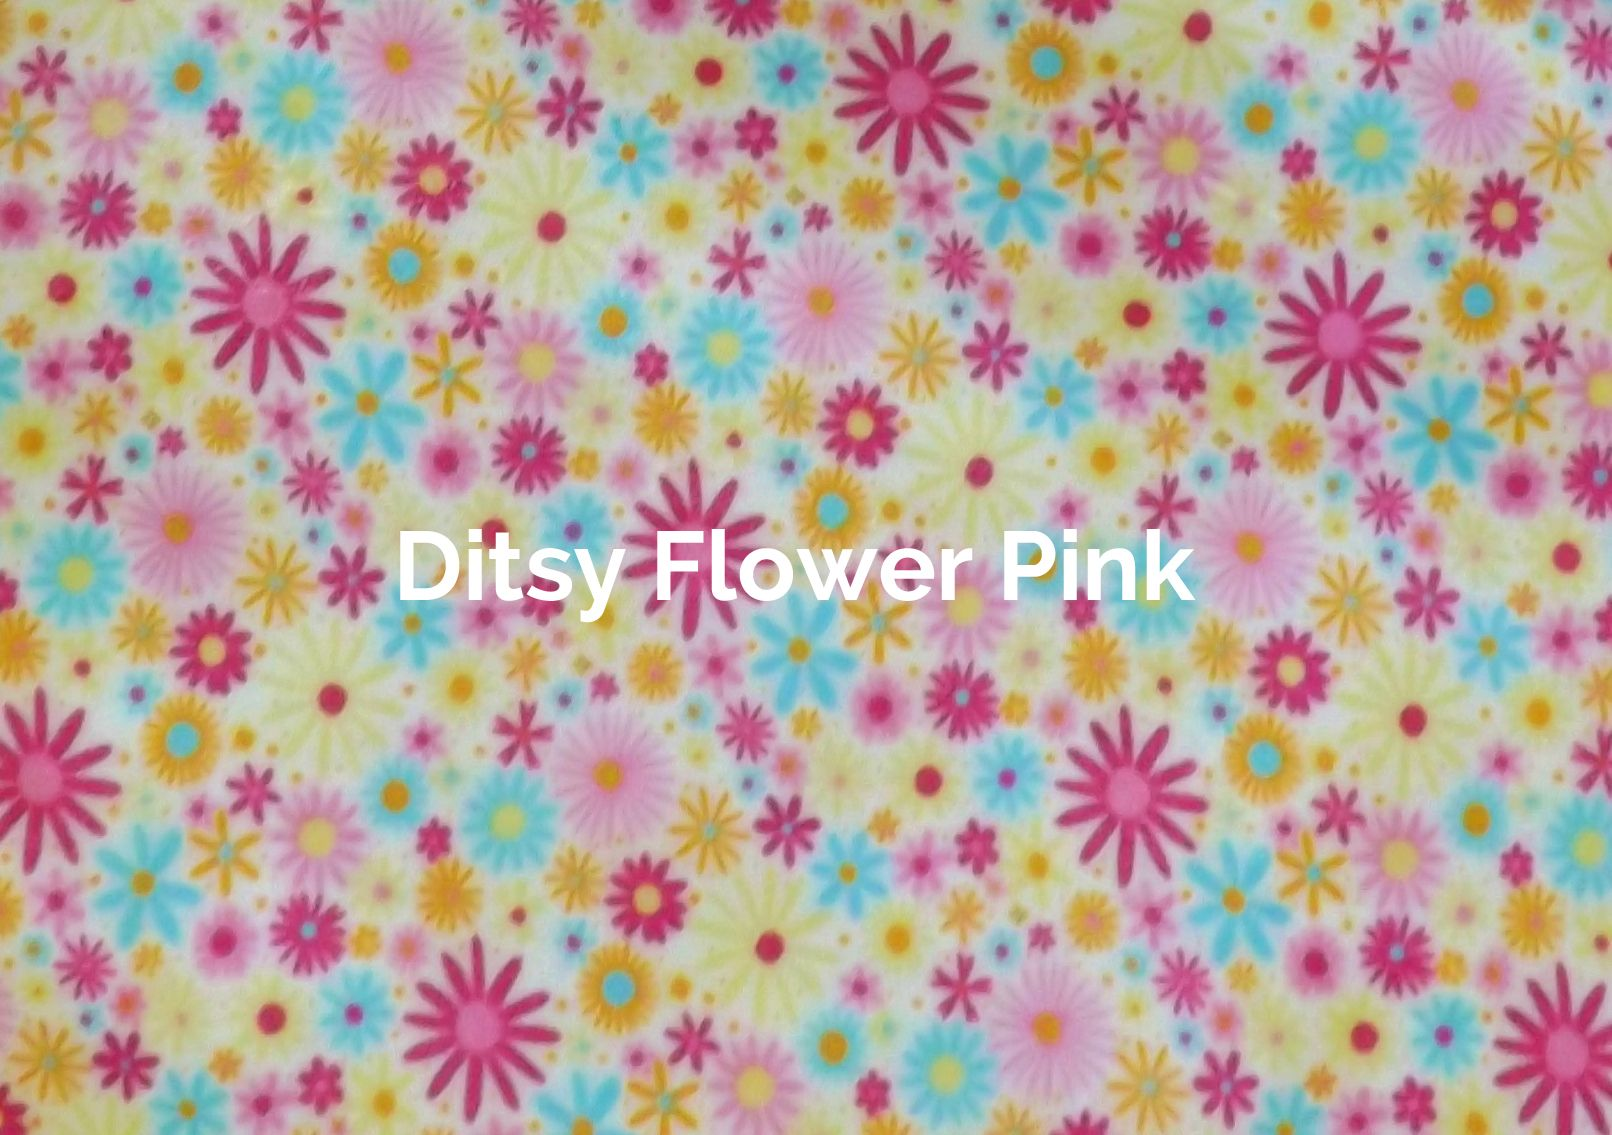 Ditsy Flower Pink fabric of a V-Eco Food Wrap